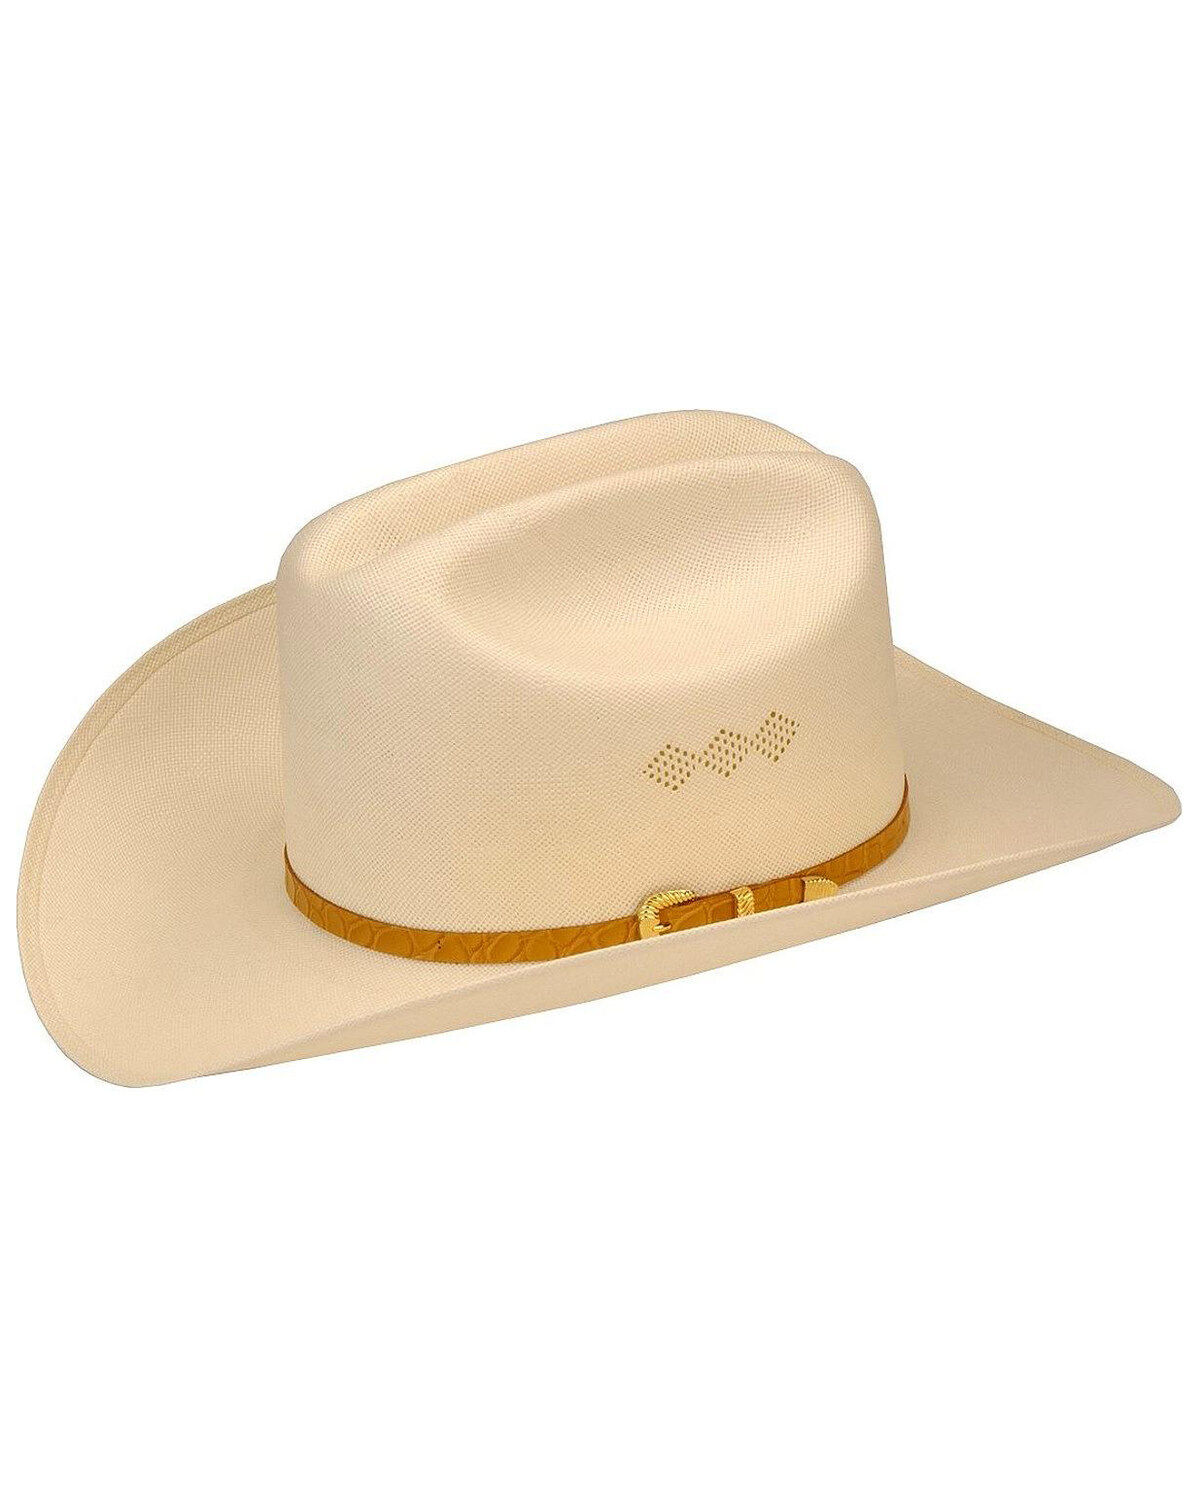 a90bed976b750 Men s Straw Western Hats